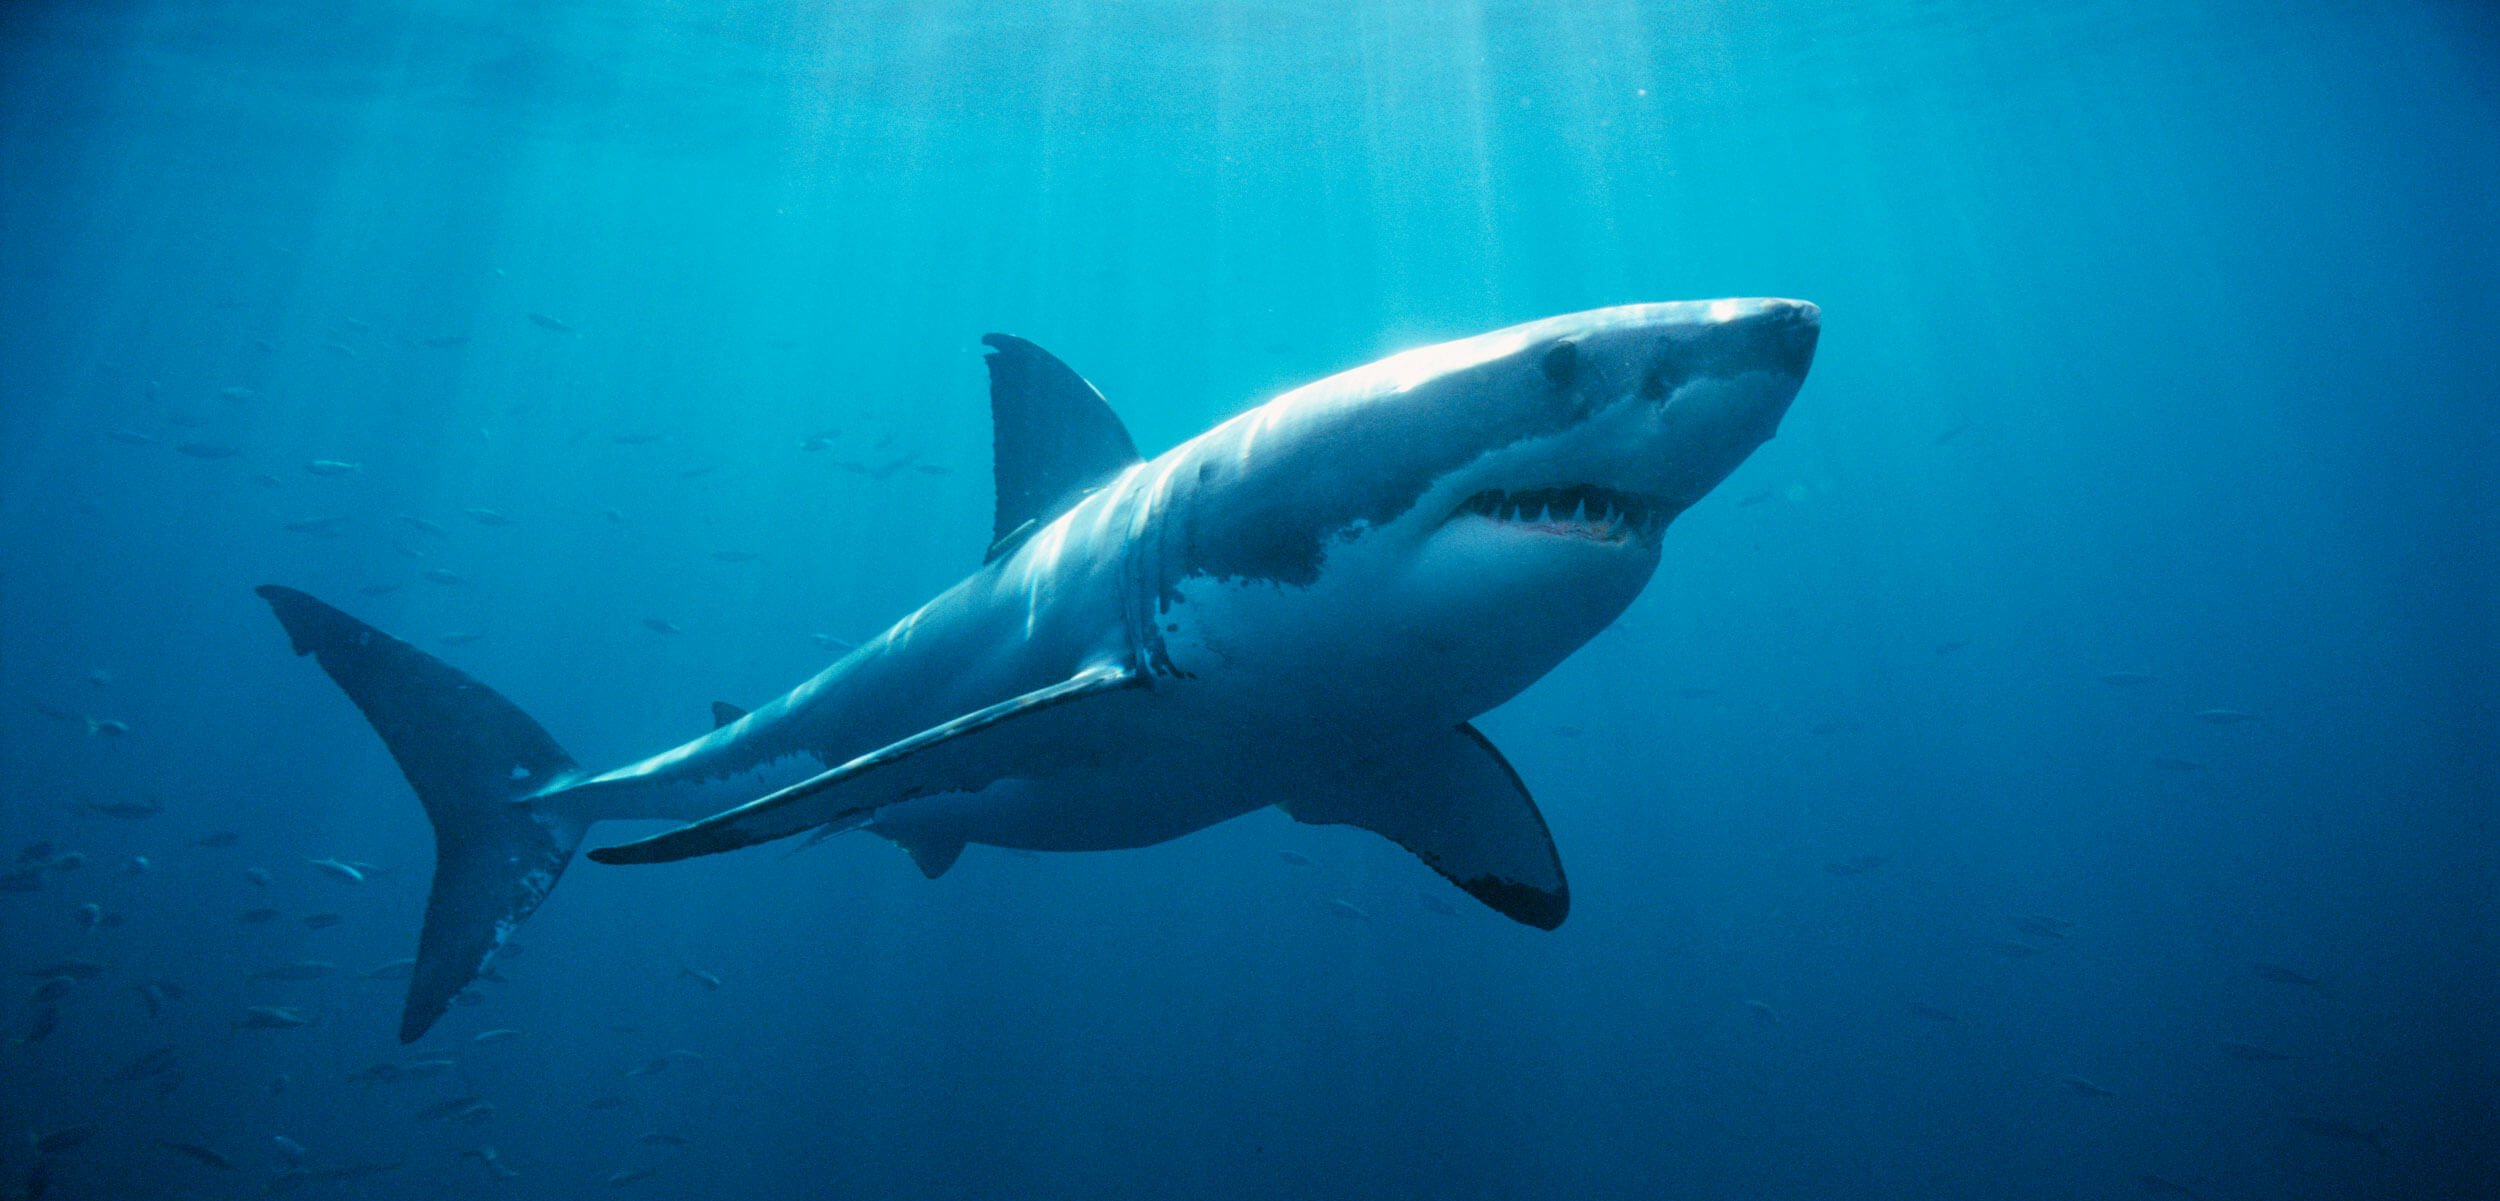 White sharks gather annually in groups off the coast of Australia, but it is not clear why